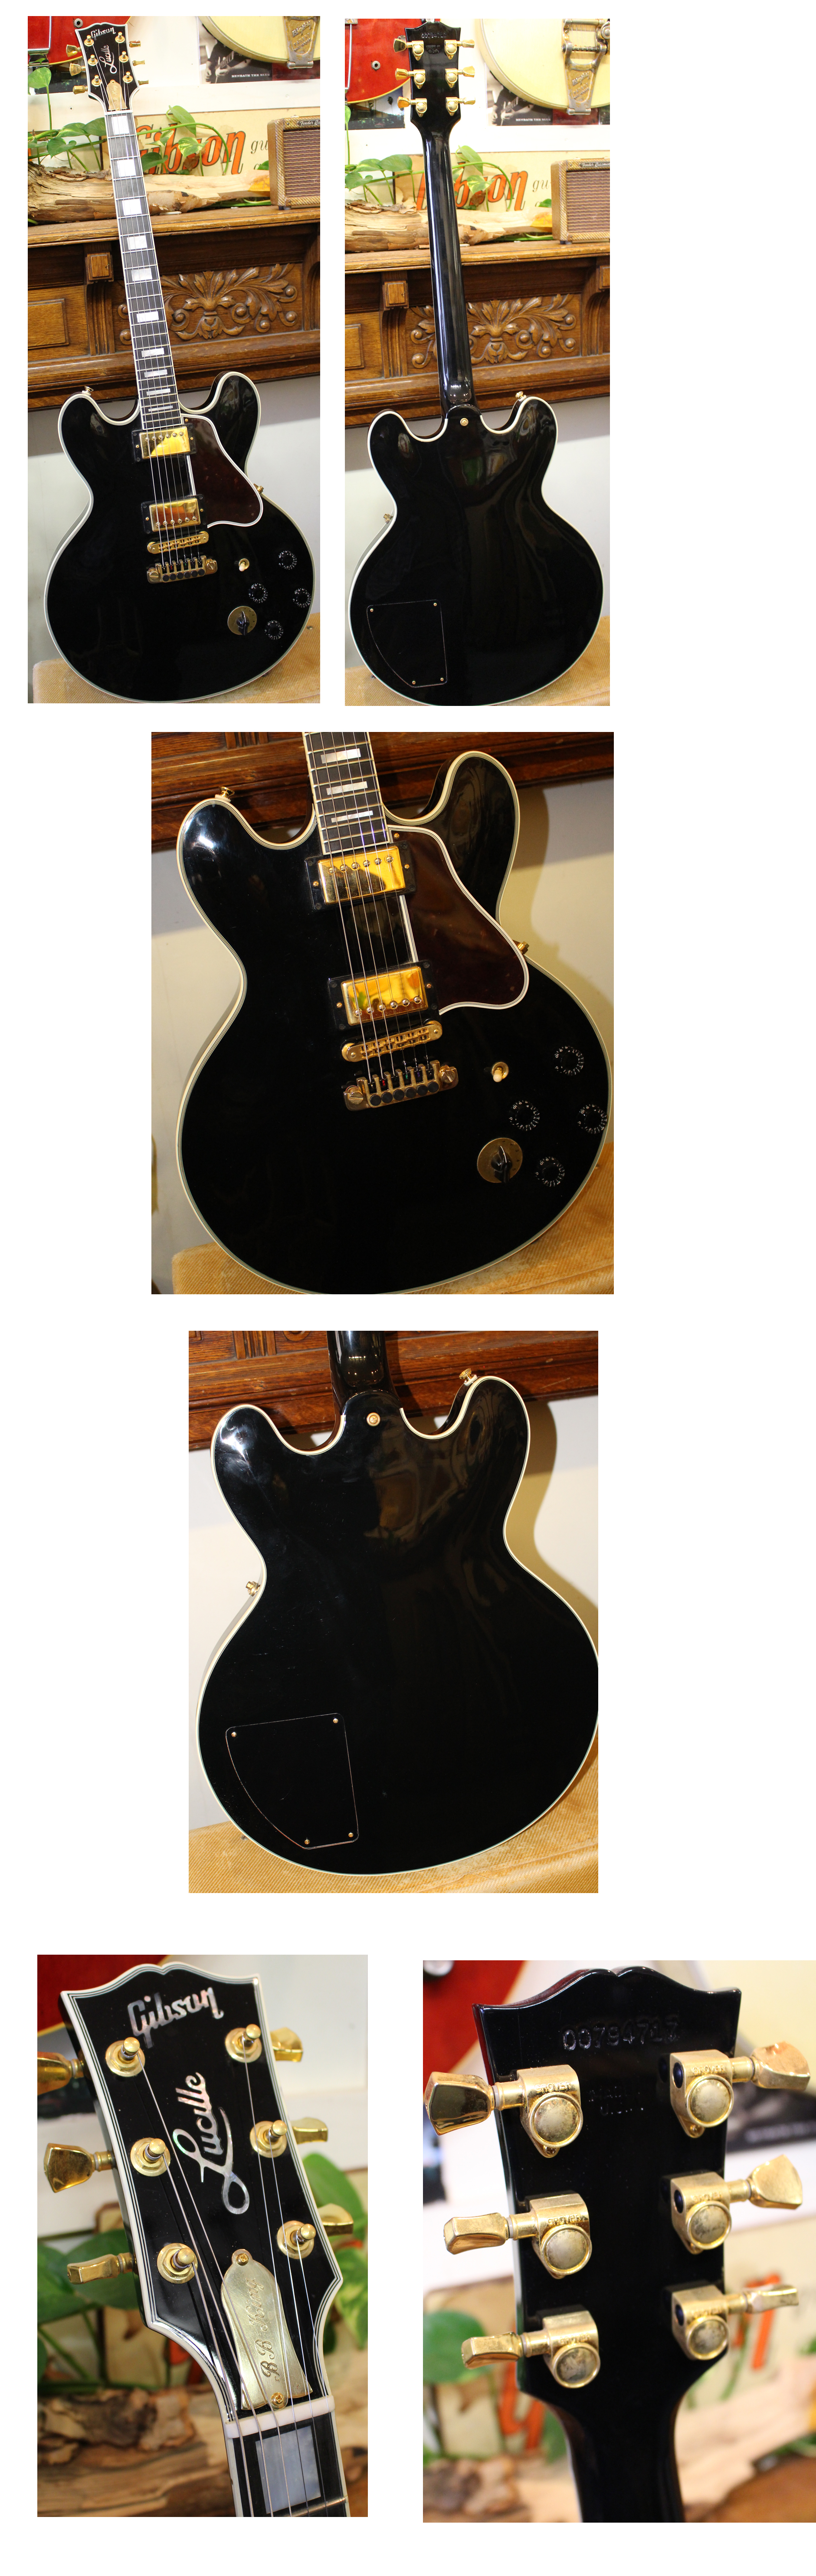 Stock Electric Guitar Parts Diagram String Finger Numbering And Etc 4450 Gibson Lucille 2004 Black All Original With Tp 6 Fine Tuning Tailpiece Varitone Gold Hardware Bb King Truss Rod Cover On Case Exc